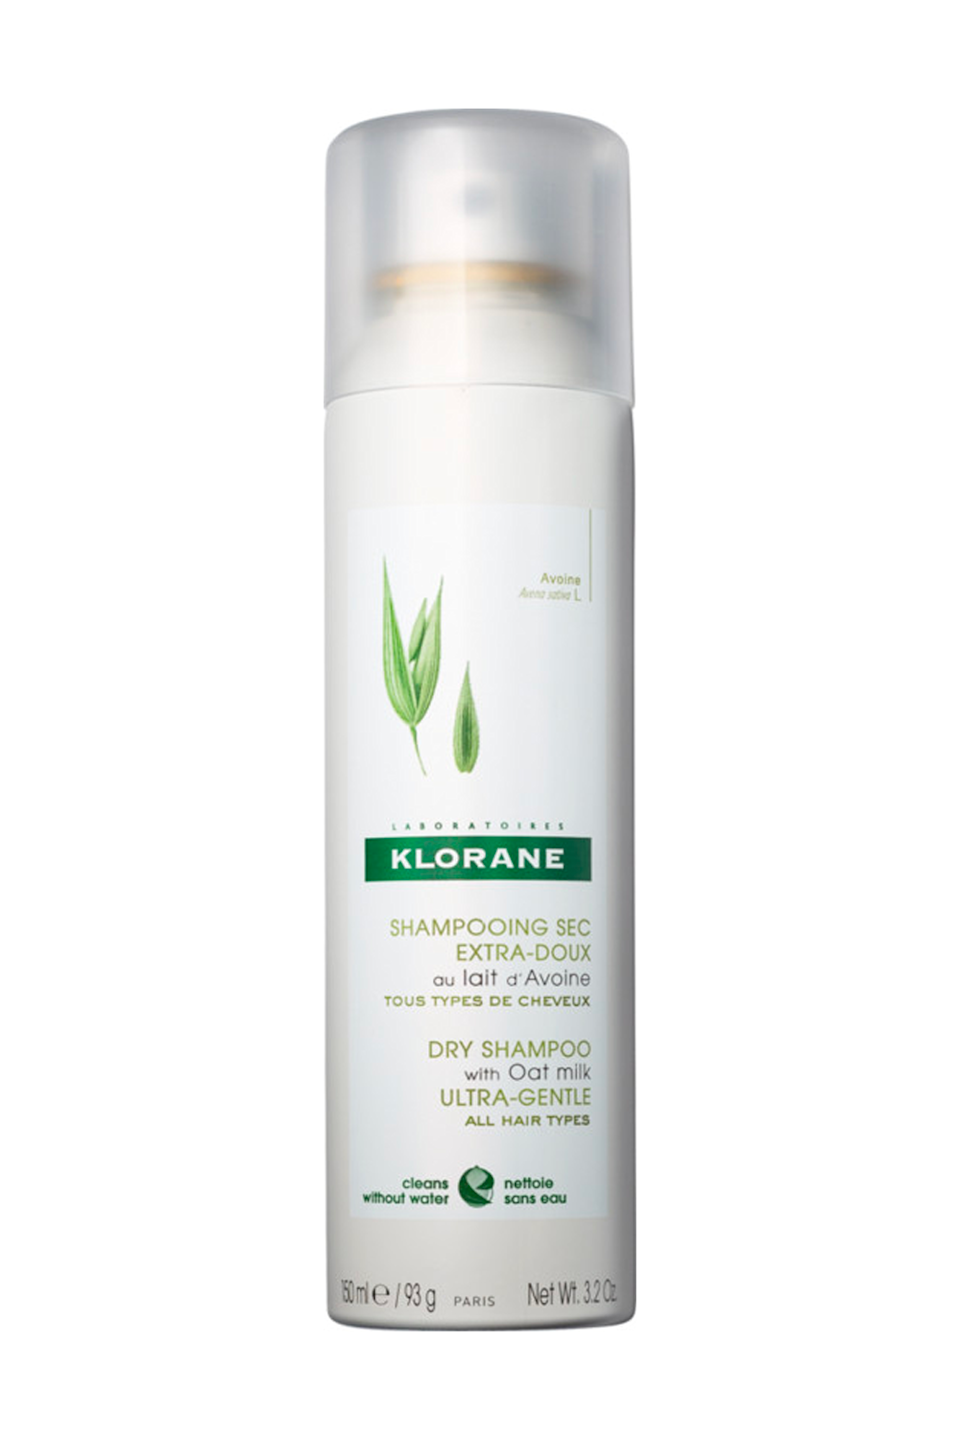 """<p><strong>Klorane</strong></p><p>ulta.com</p><p><strong>$20.00</strong></p><p><a href=""""https://go.redirectingat.com?id=74968X1596630&url=https%3A%2F%2Fwww.ulta.com%2Fdry-shampoo-with-oat-milk-all-hair-types%3FproductId%3DxlsImpprod14811087&sref=https%3A%2F%2Fwww.cosmopolitan.com%2Fstyle-beauty%2Fbeauty%2Fg36131689%2Fbest-dry-shampoos-for-hair%2F"""" rel=""""nofollow noopener"""" target=""""_blank"""" data-ylk=""""slk:Shop Now"""" class=""""link rapid-noclick-resp"""">Shop Now</a></p><p>There's a reason this dry shampoo has remained a cult-favorite for so many years: It's <strong>lightweight, gentle, and it zaps excess oil and shine</strong> without leaving behind a white cast. It's all thanks to the formula's hero ingredient oat milk, which soothes <a href=""""https://www.cosmopolitan.com/style-beauty/beauty/g30896457/dry-scalp-treatment-products/"""" rel=""""nofollow noopener"""" target=""""_blank"""" data-ylk=""""slk:dry, sensitive scalps"""" class=""""link rapid-noclick-resp"""">dry, sensitive scalps</a> with ease.</p>"""